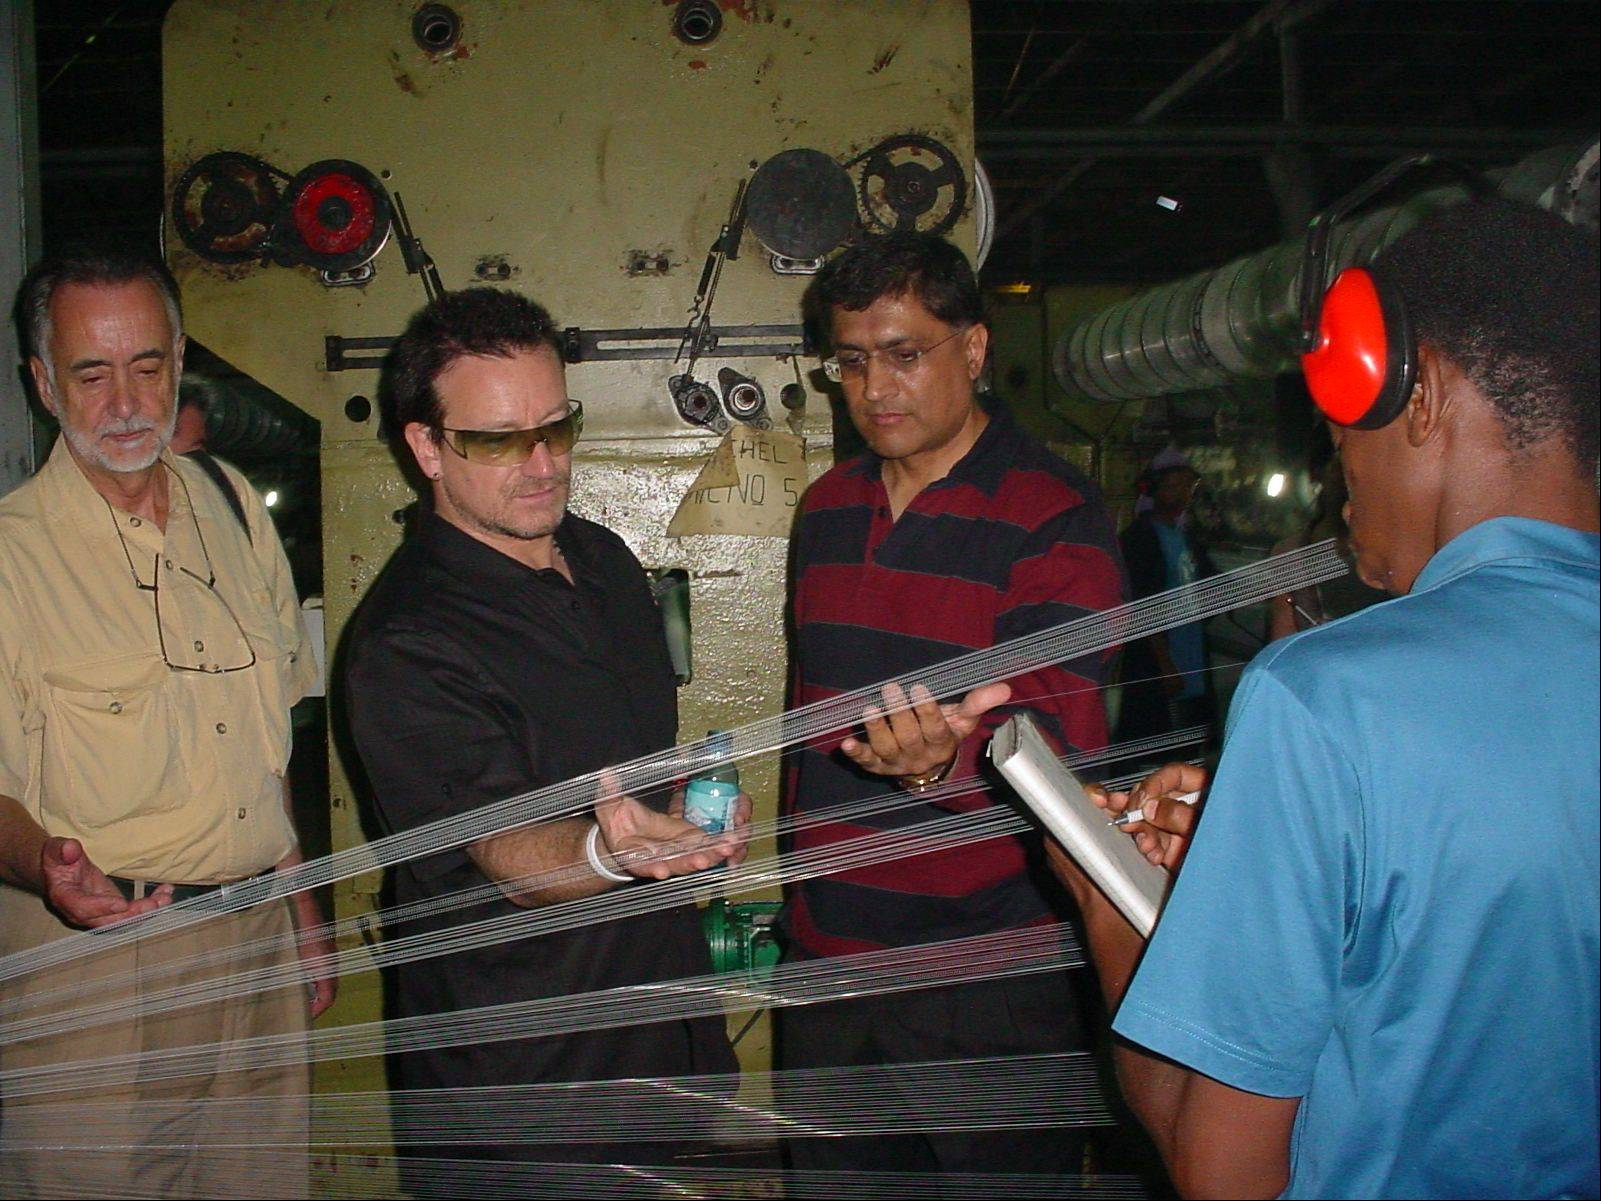 U2's lead singer Bono, second left, observes the weaving process of an insecticide treated net that fights malaria at the A to Z Textile Mills factory in Arusha, Tanzania on Saturday May 20, 2006 in the only factory in Africa, manufacturing such nets. The 46-year-old Irish rocker, who has long complained that Africa's problems get little attention in the news, is on a 10-day tour of Africa that's already taken him to South Africa, Rwanda and Lesotho. He also planned stops in Nigeria, Mali and Ghana.